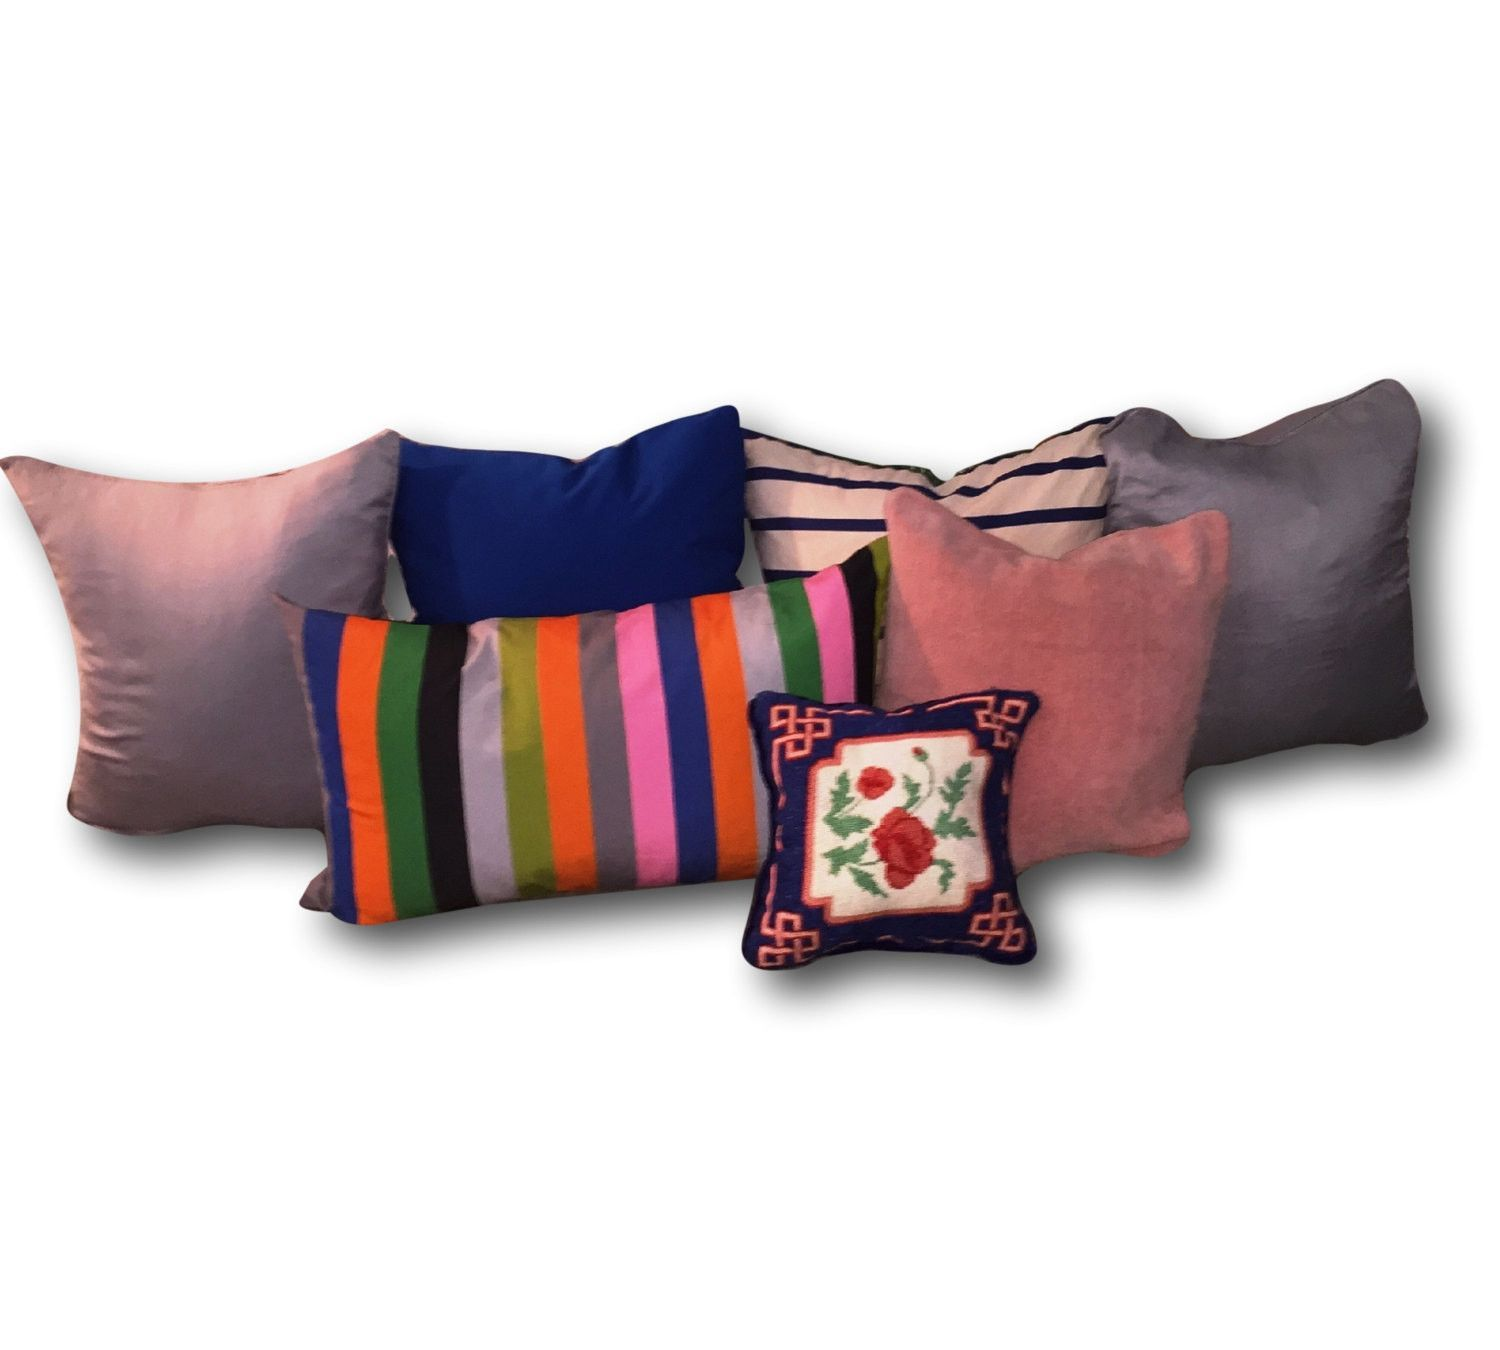 Pillows Decorative On Couch Cozy Living Rooms Pottery Barn